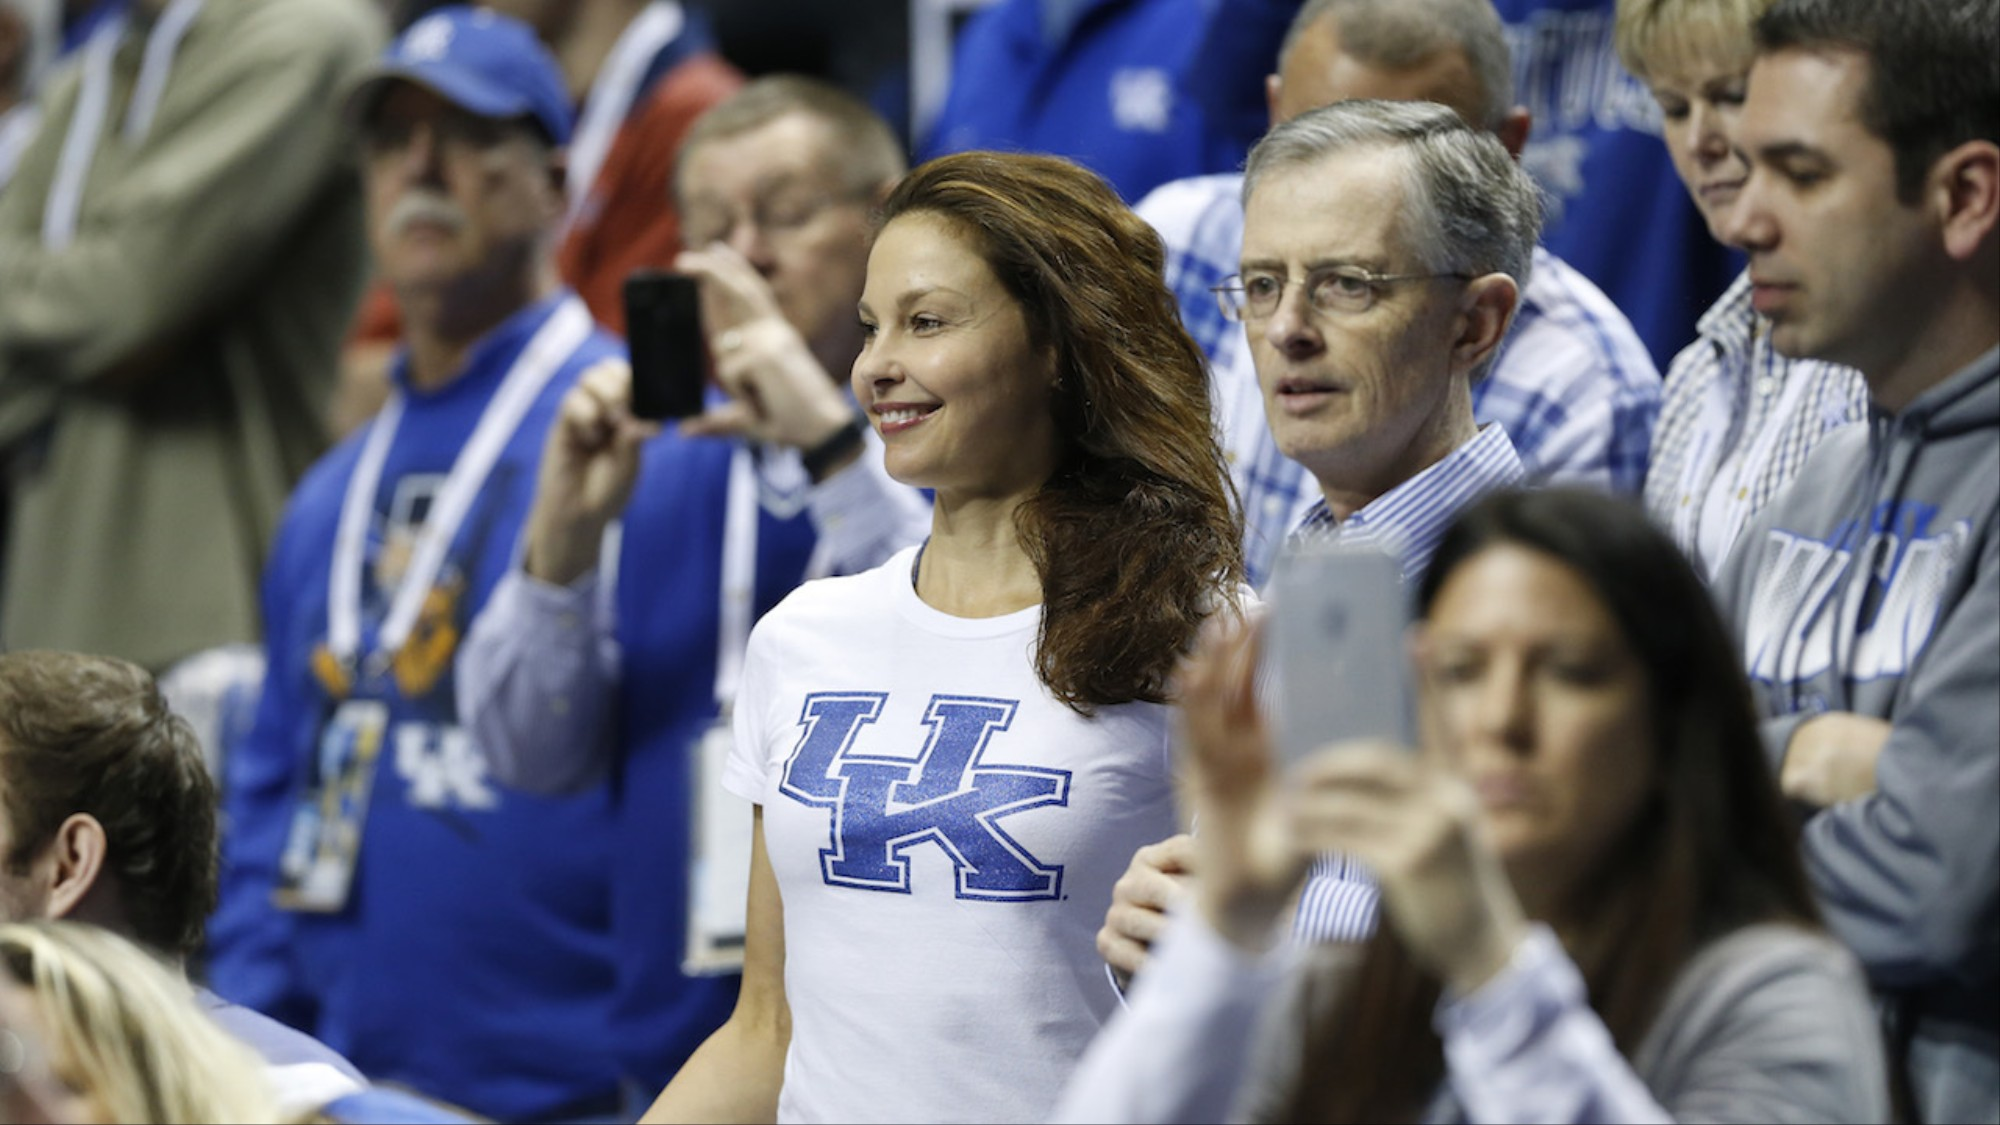 Ashley Judd Cunt ashley judd's fight back against twitter abuse shows 'grey